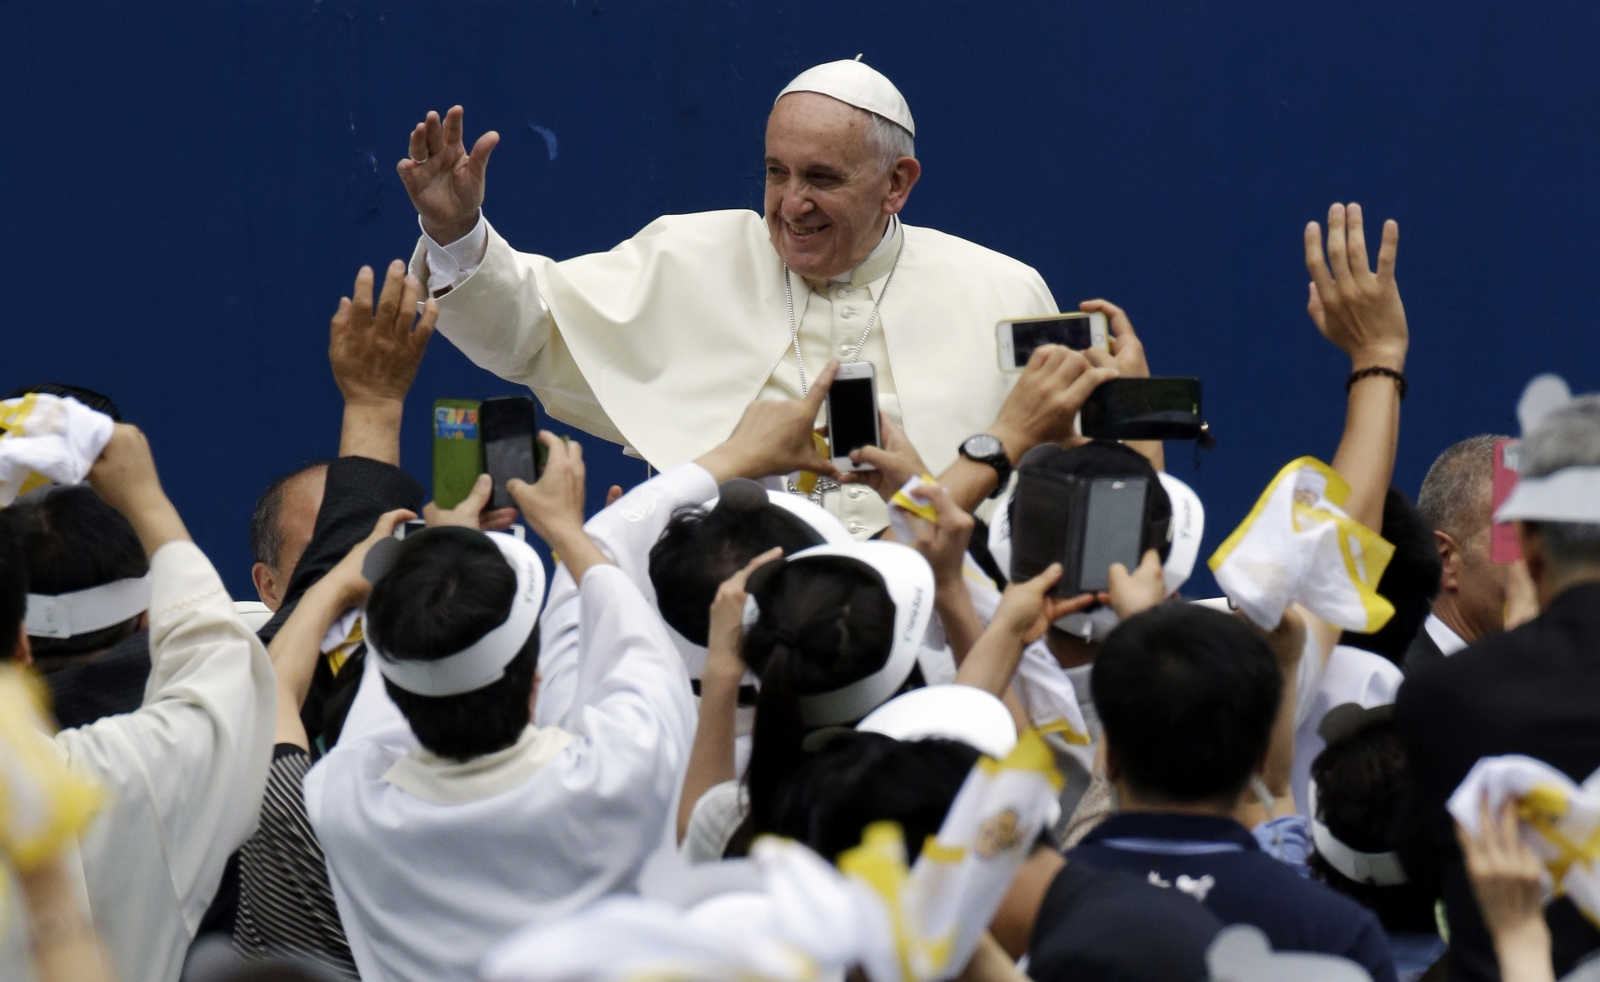 Pope Francis is greeted by the faithful upon his arrival for the Holy Mass at Daejeon World Cup stadium in Daejeon